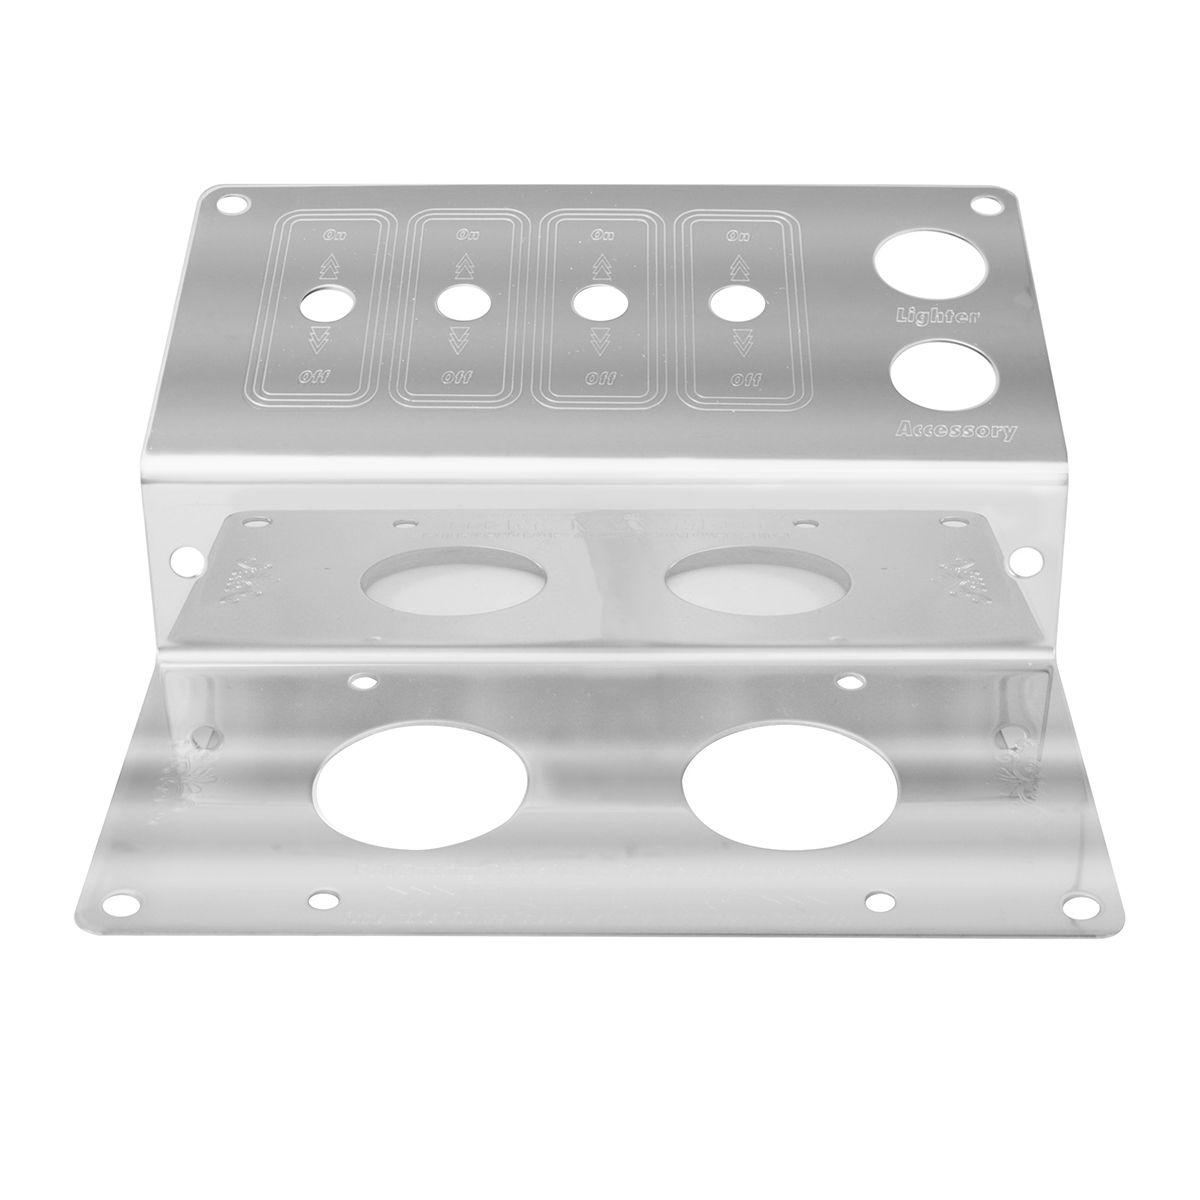 68331 Parking Brake Control Plate w/ 4 Switches for Peterbilt 379